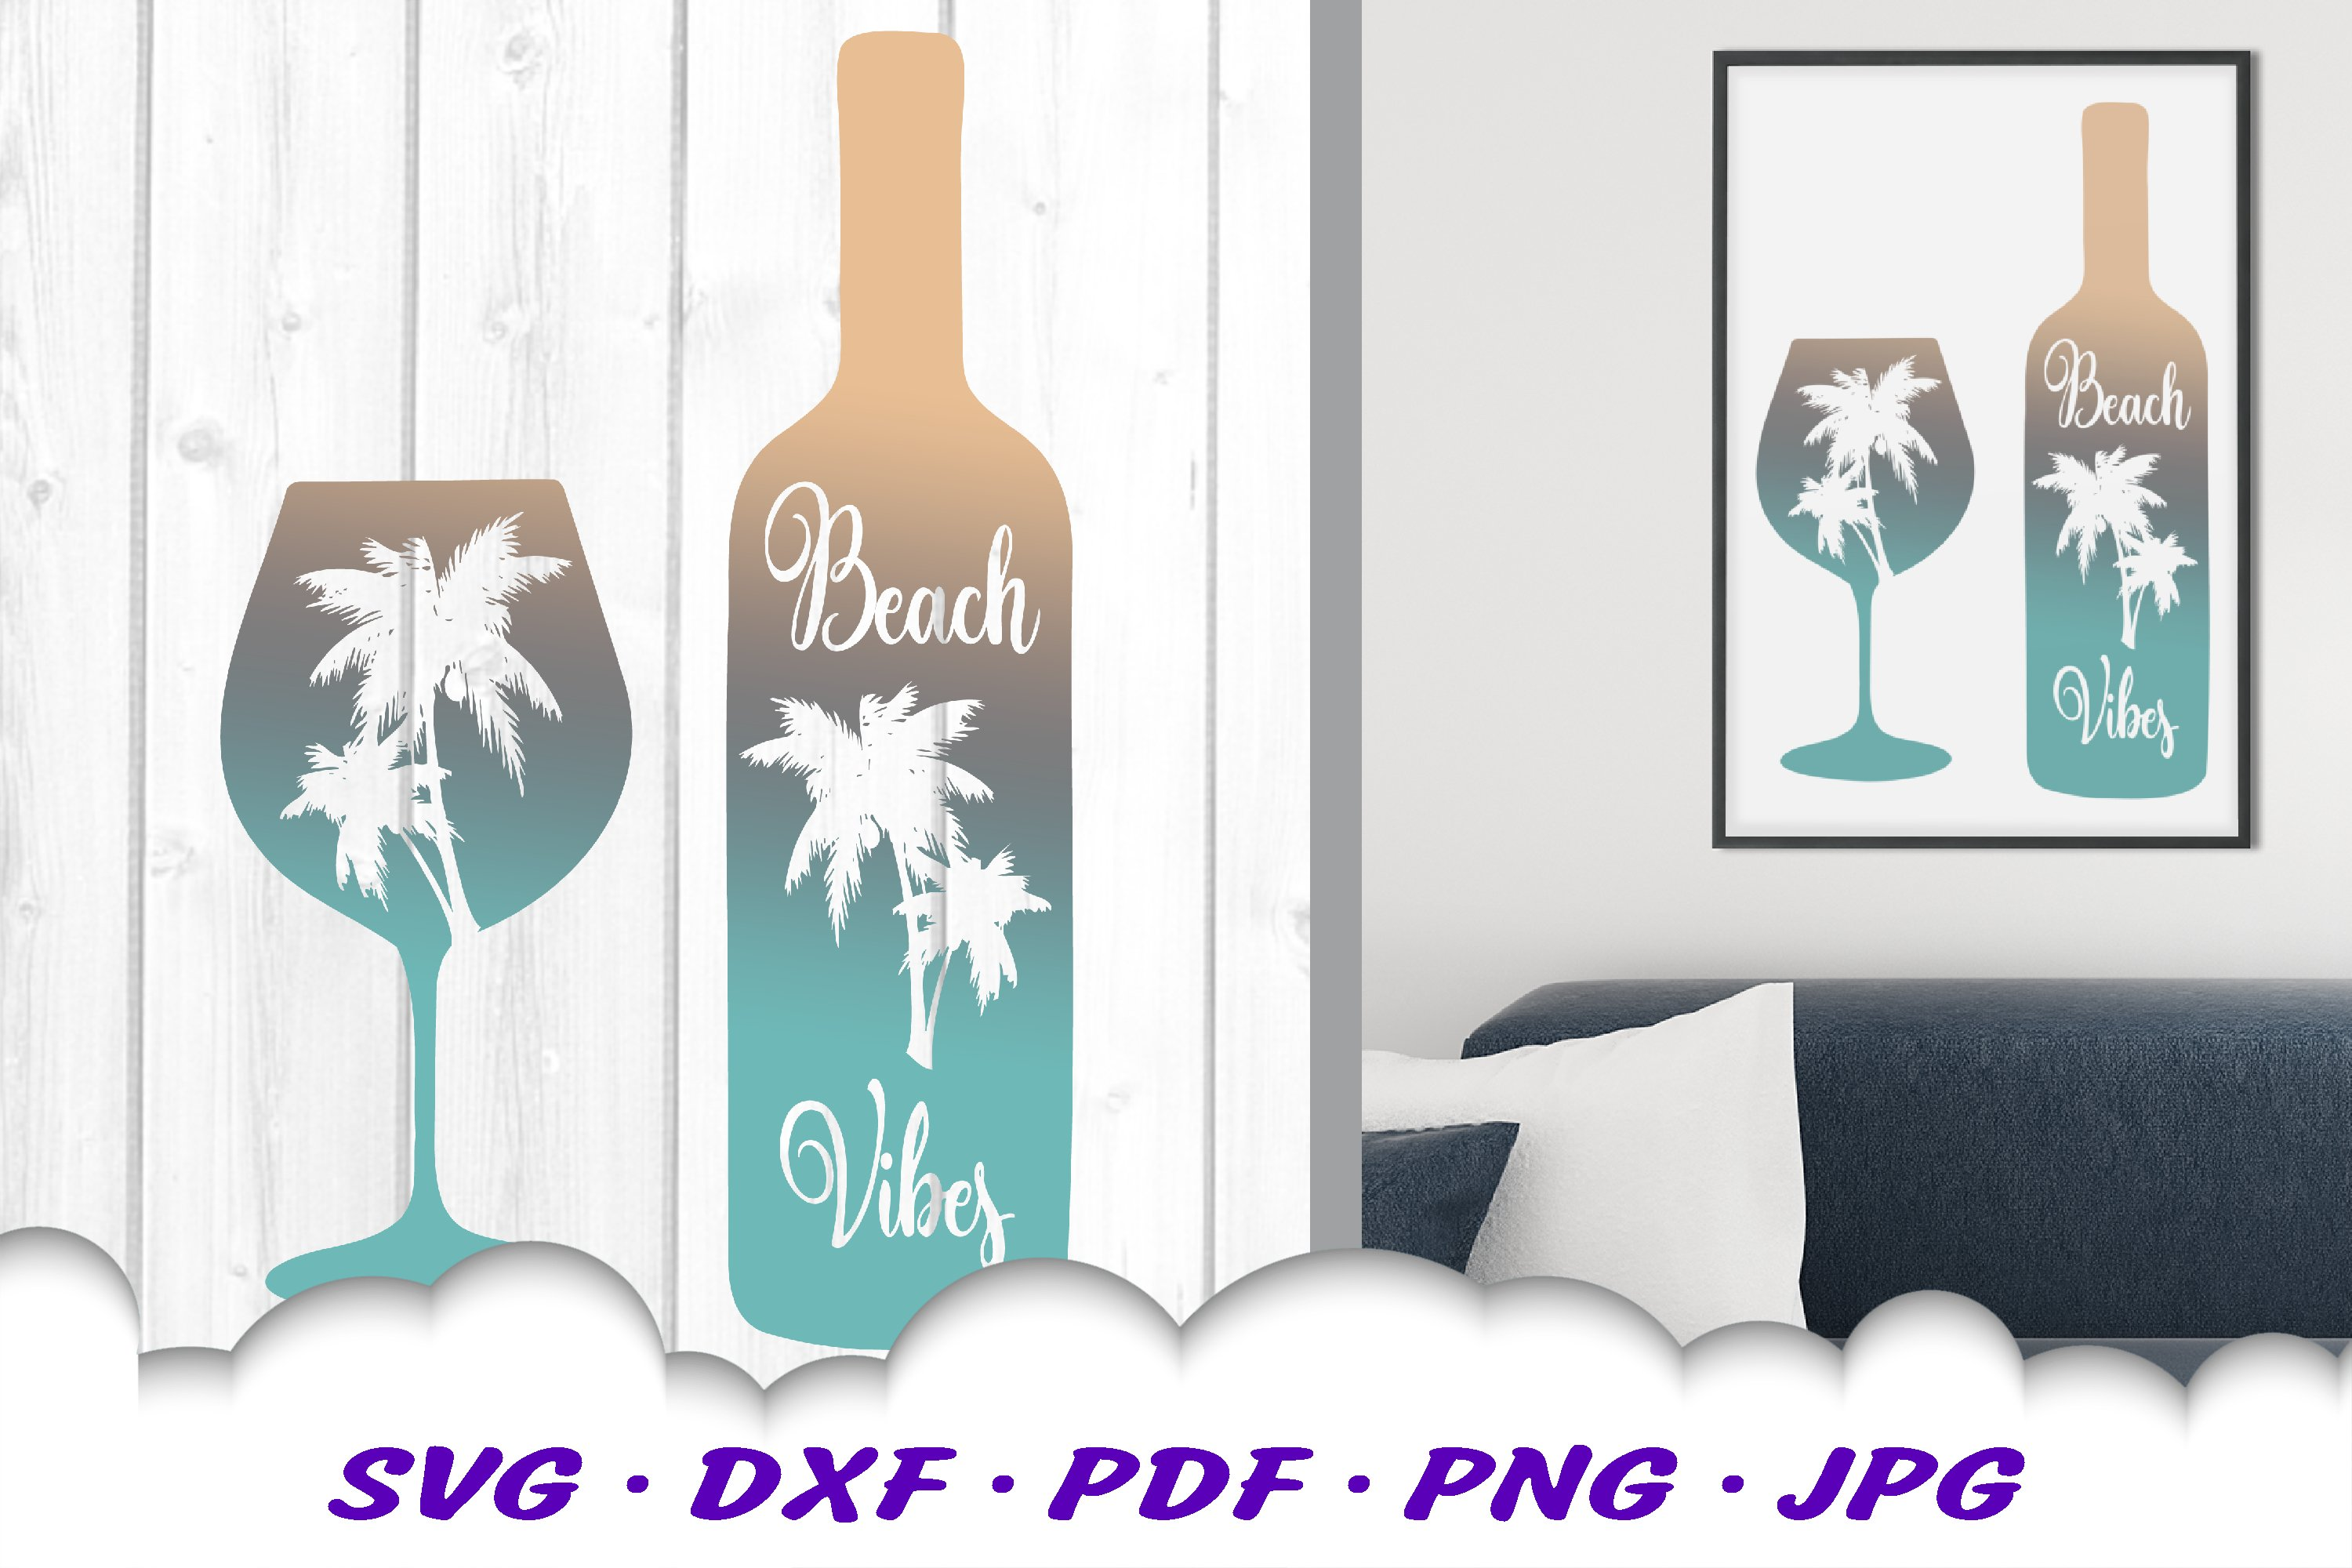 Beach Vibes Wine Bottle Glass SVG DXF Cut Files example image 1